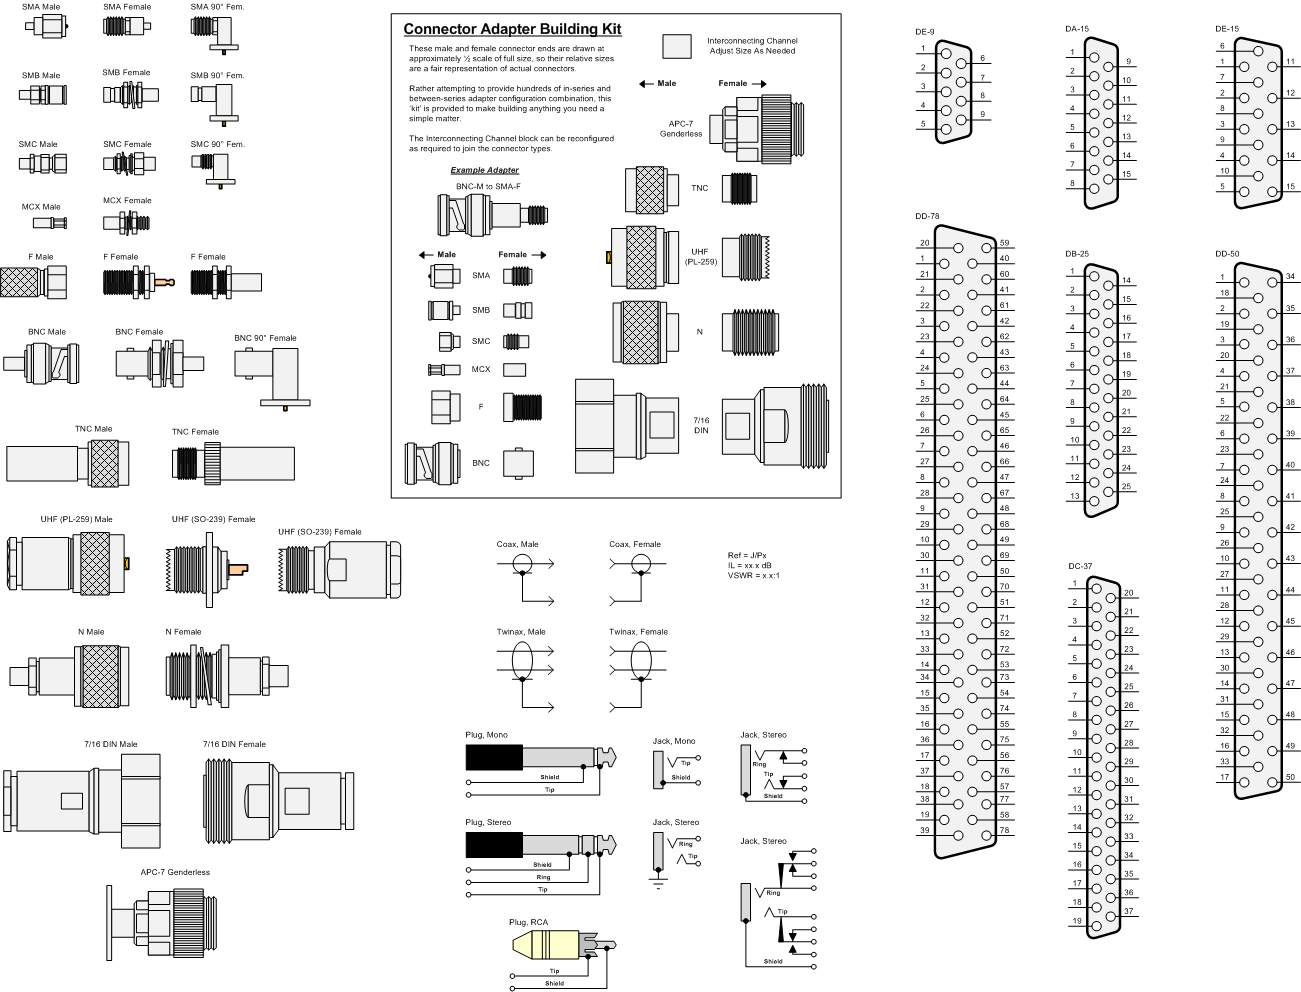 visio electrical diagram lace sensor dually wiring schematic border templates office